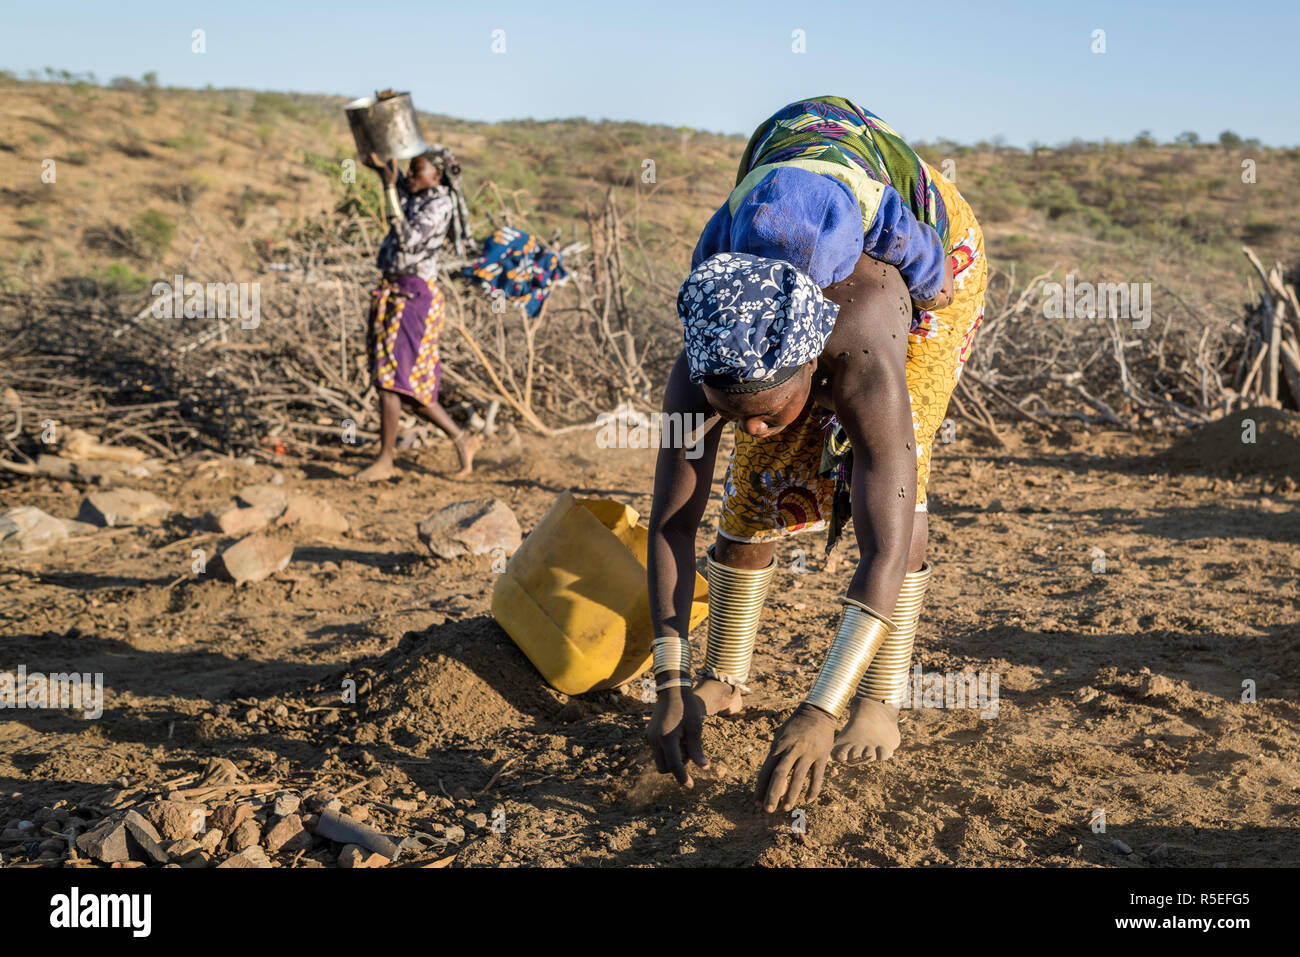 Mucubale women working in the field collecting sheep dung to use it as fertiliser. One of them carry her baby on her back while working. Stock Photo